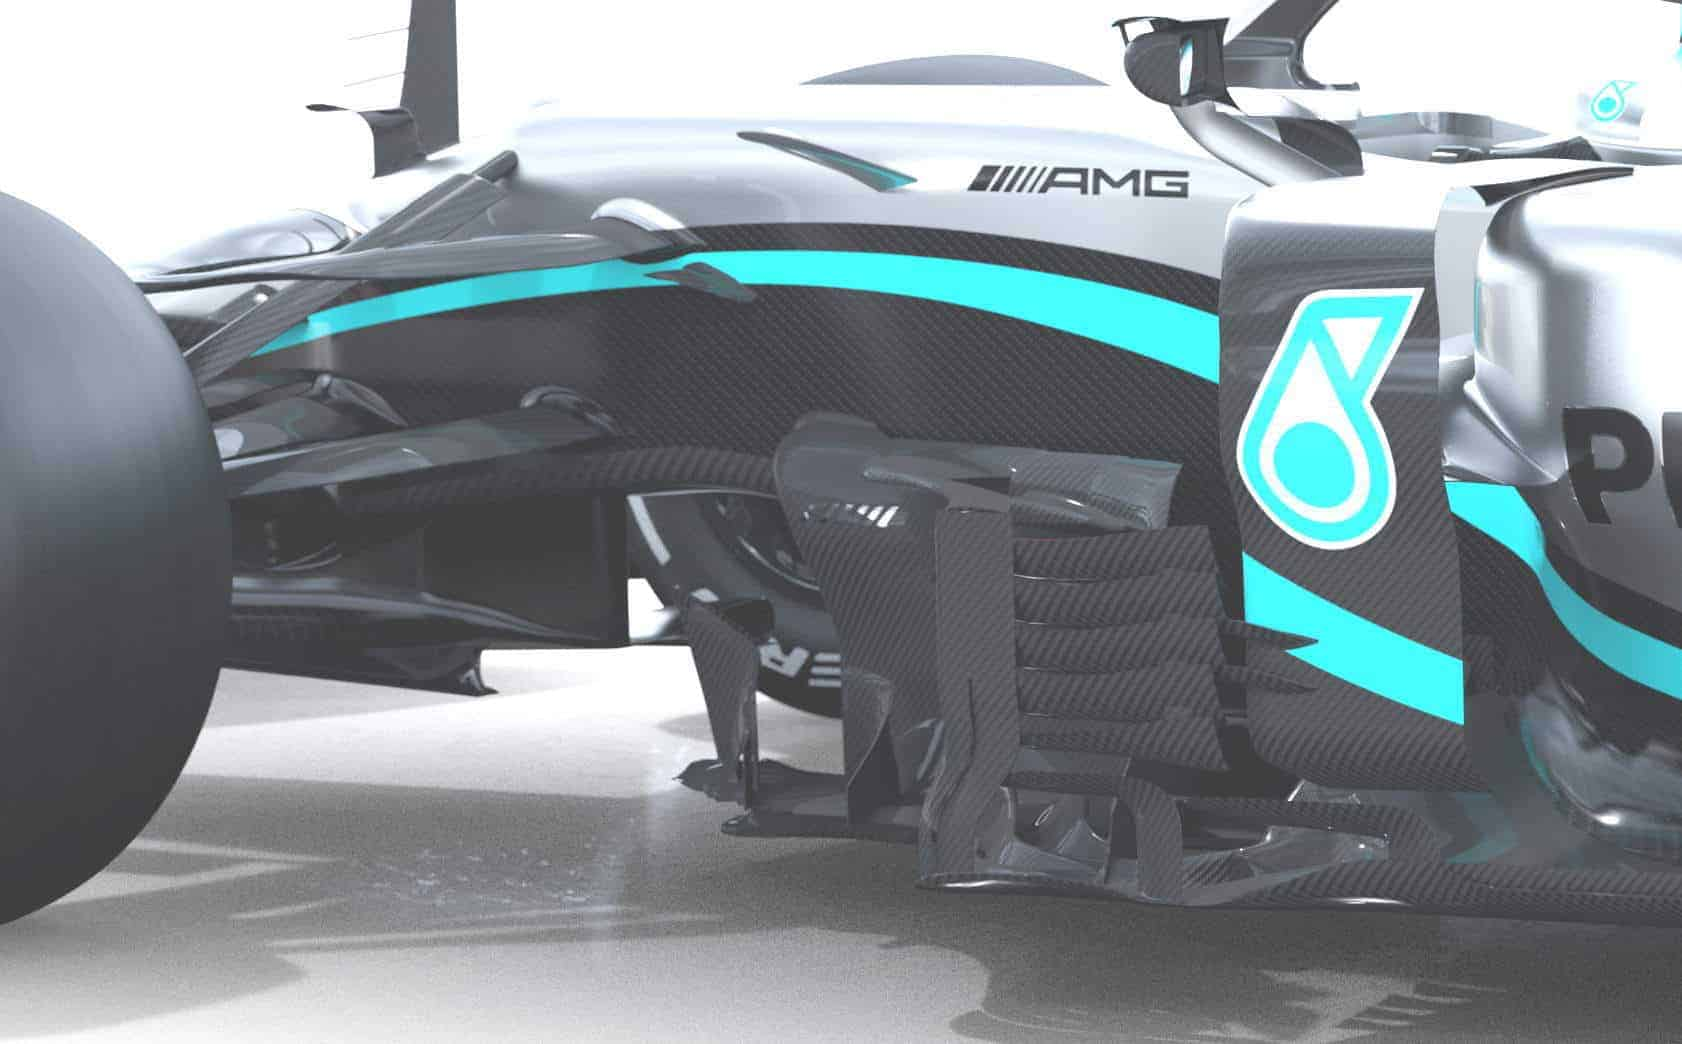 2020 F1 Mercedes F1 W11 front bargeboards behind front wheel side angle view Photo Daimler Edited by MAXF1net